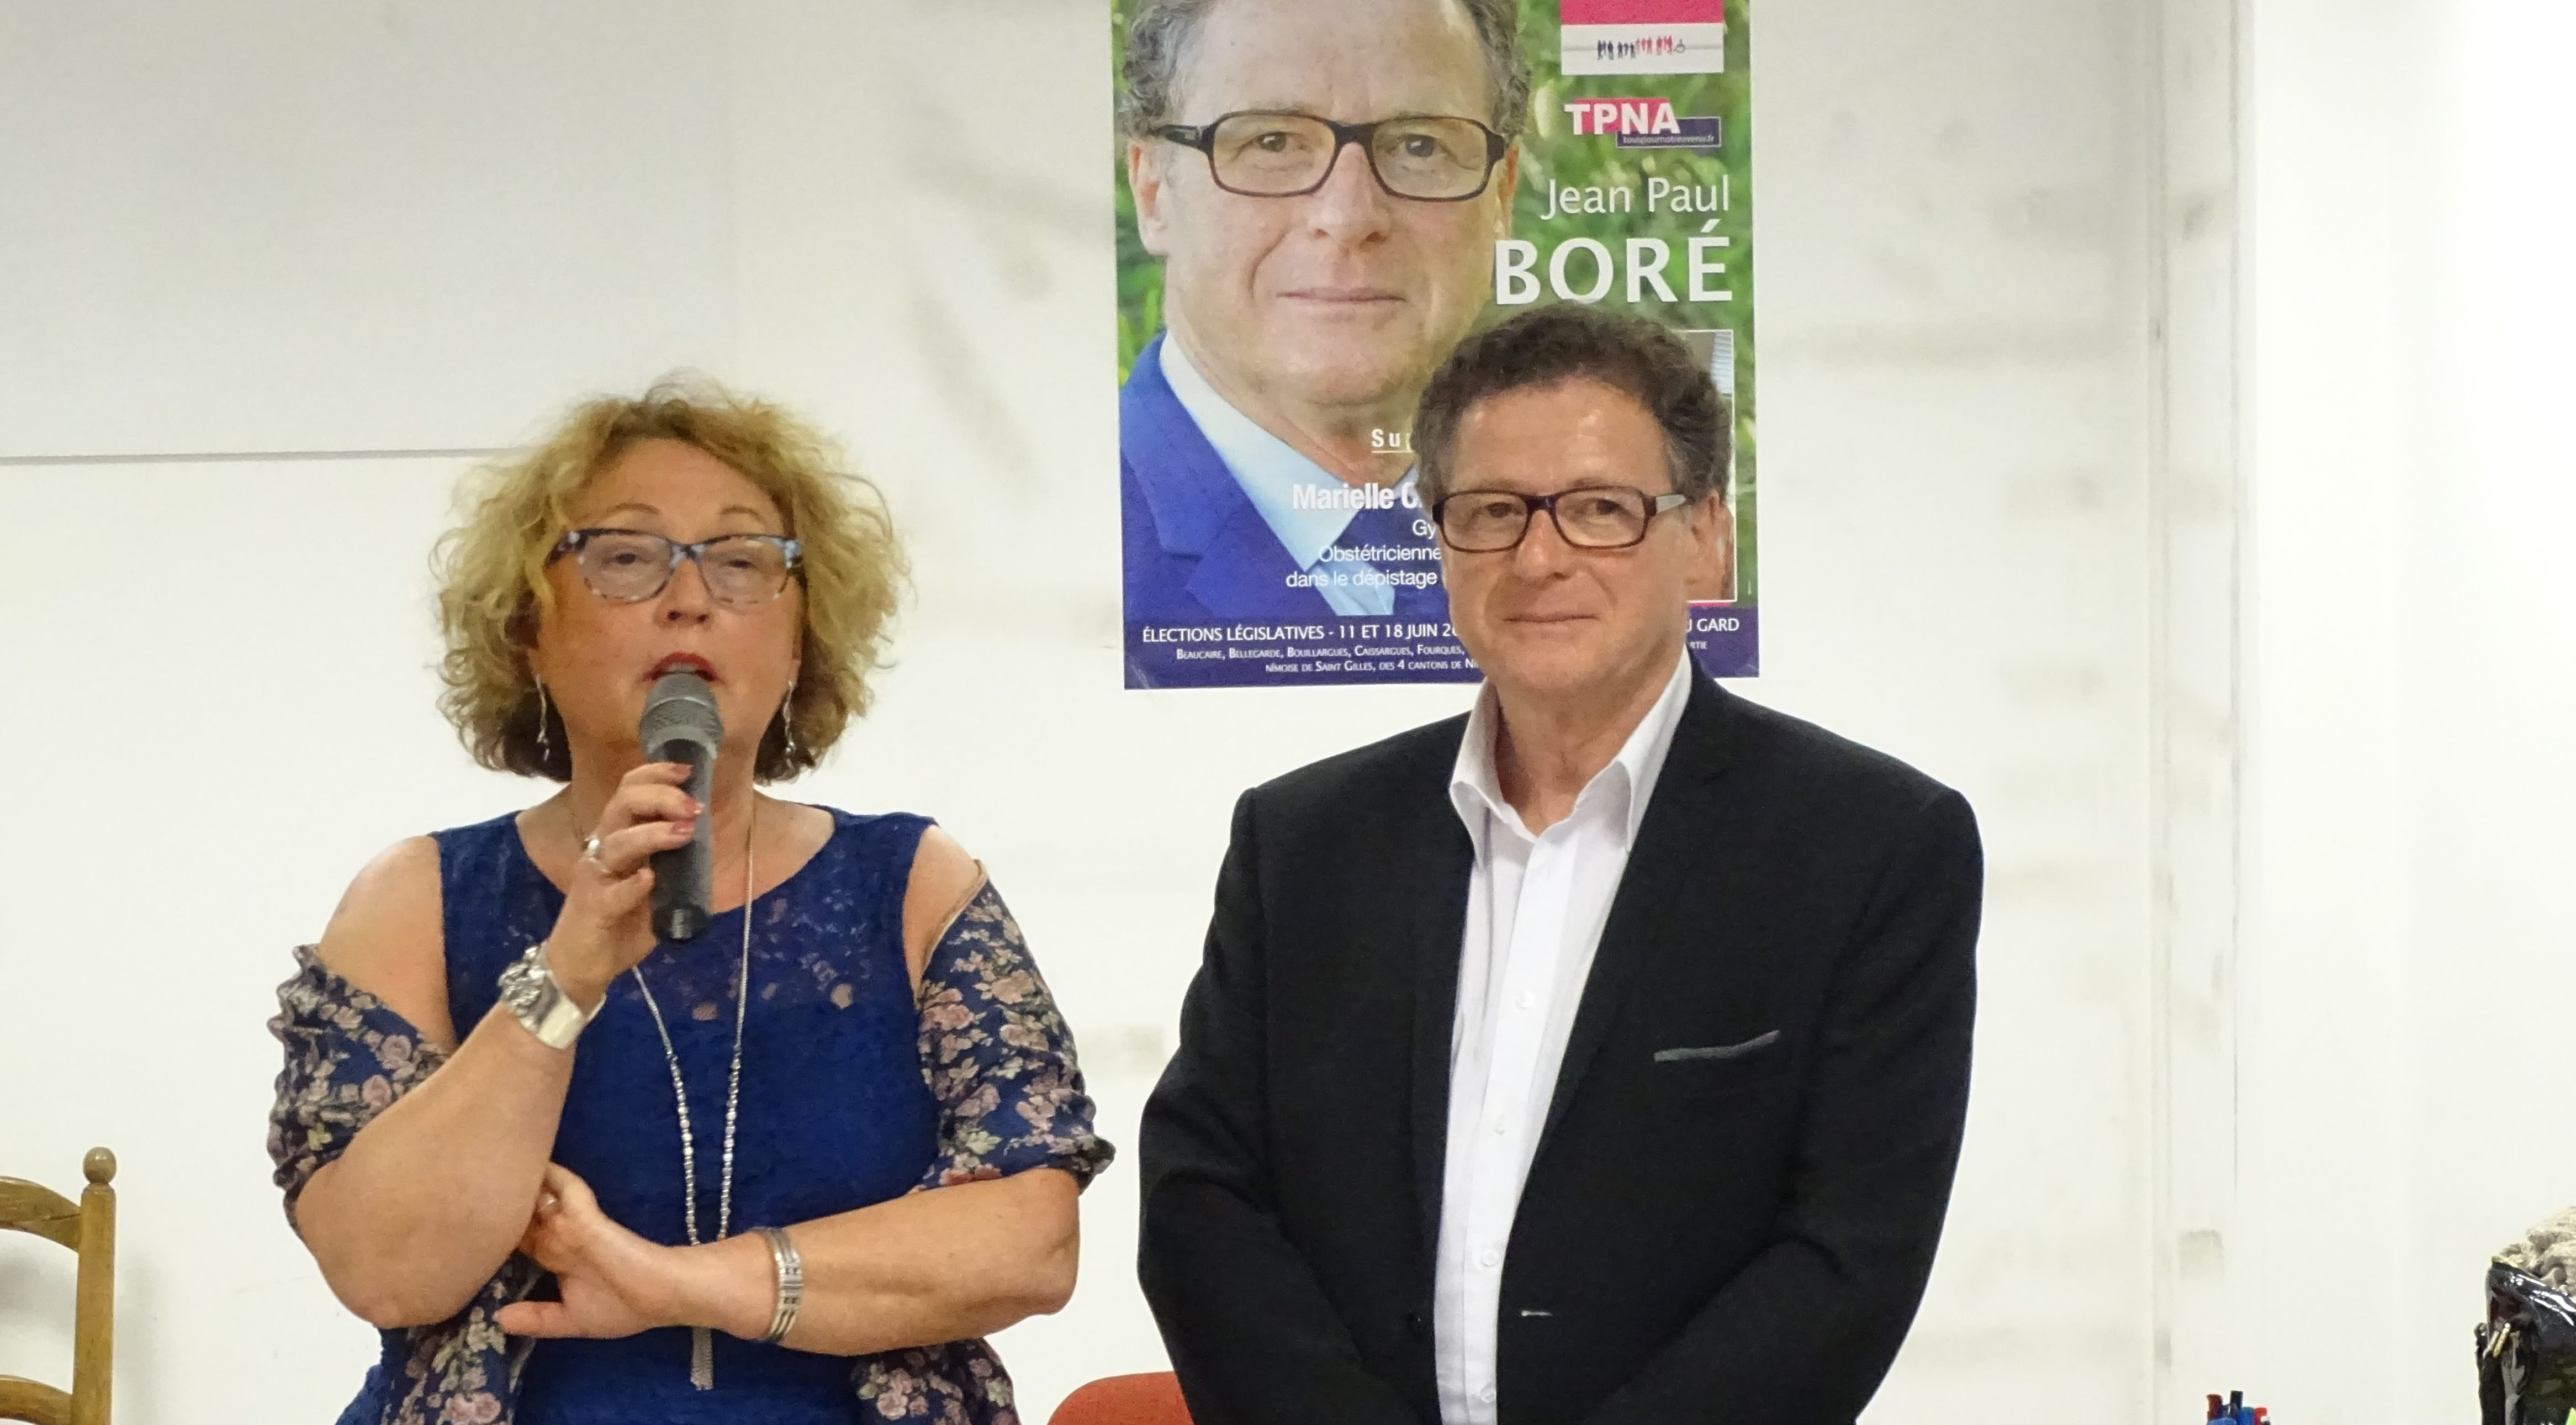 Photo of LÉGISLATIVES Pensant être victime d'une « action malveillante », Jean-Paul Boré porte plainte